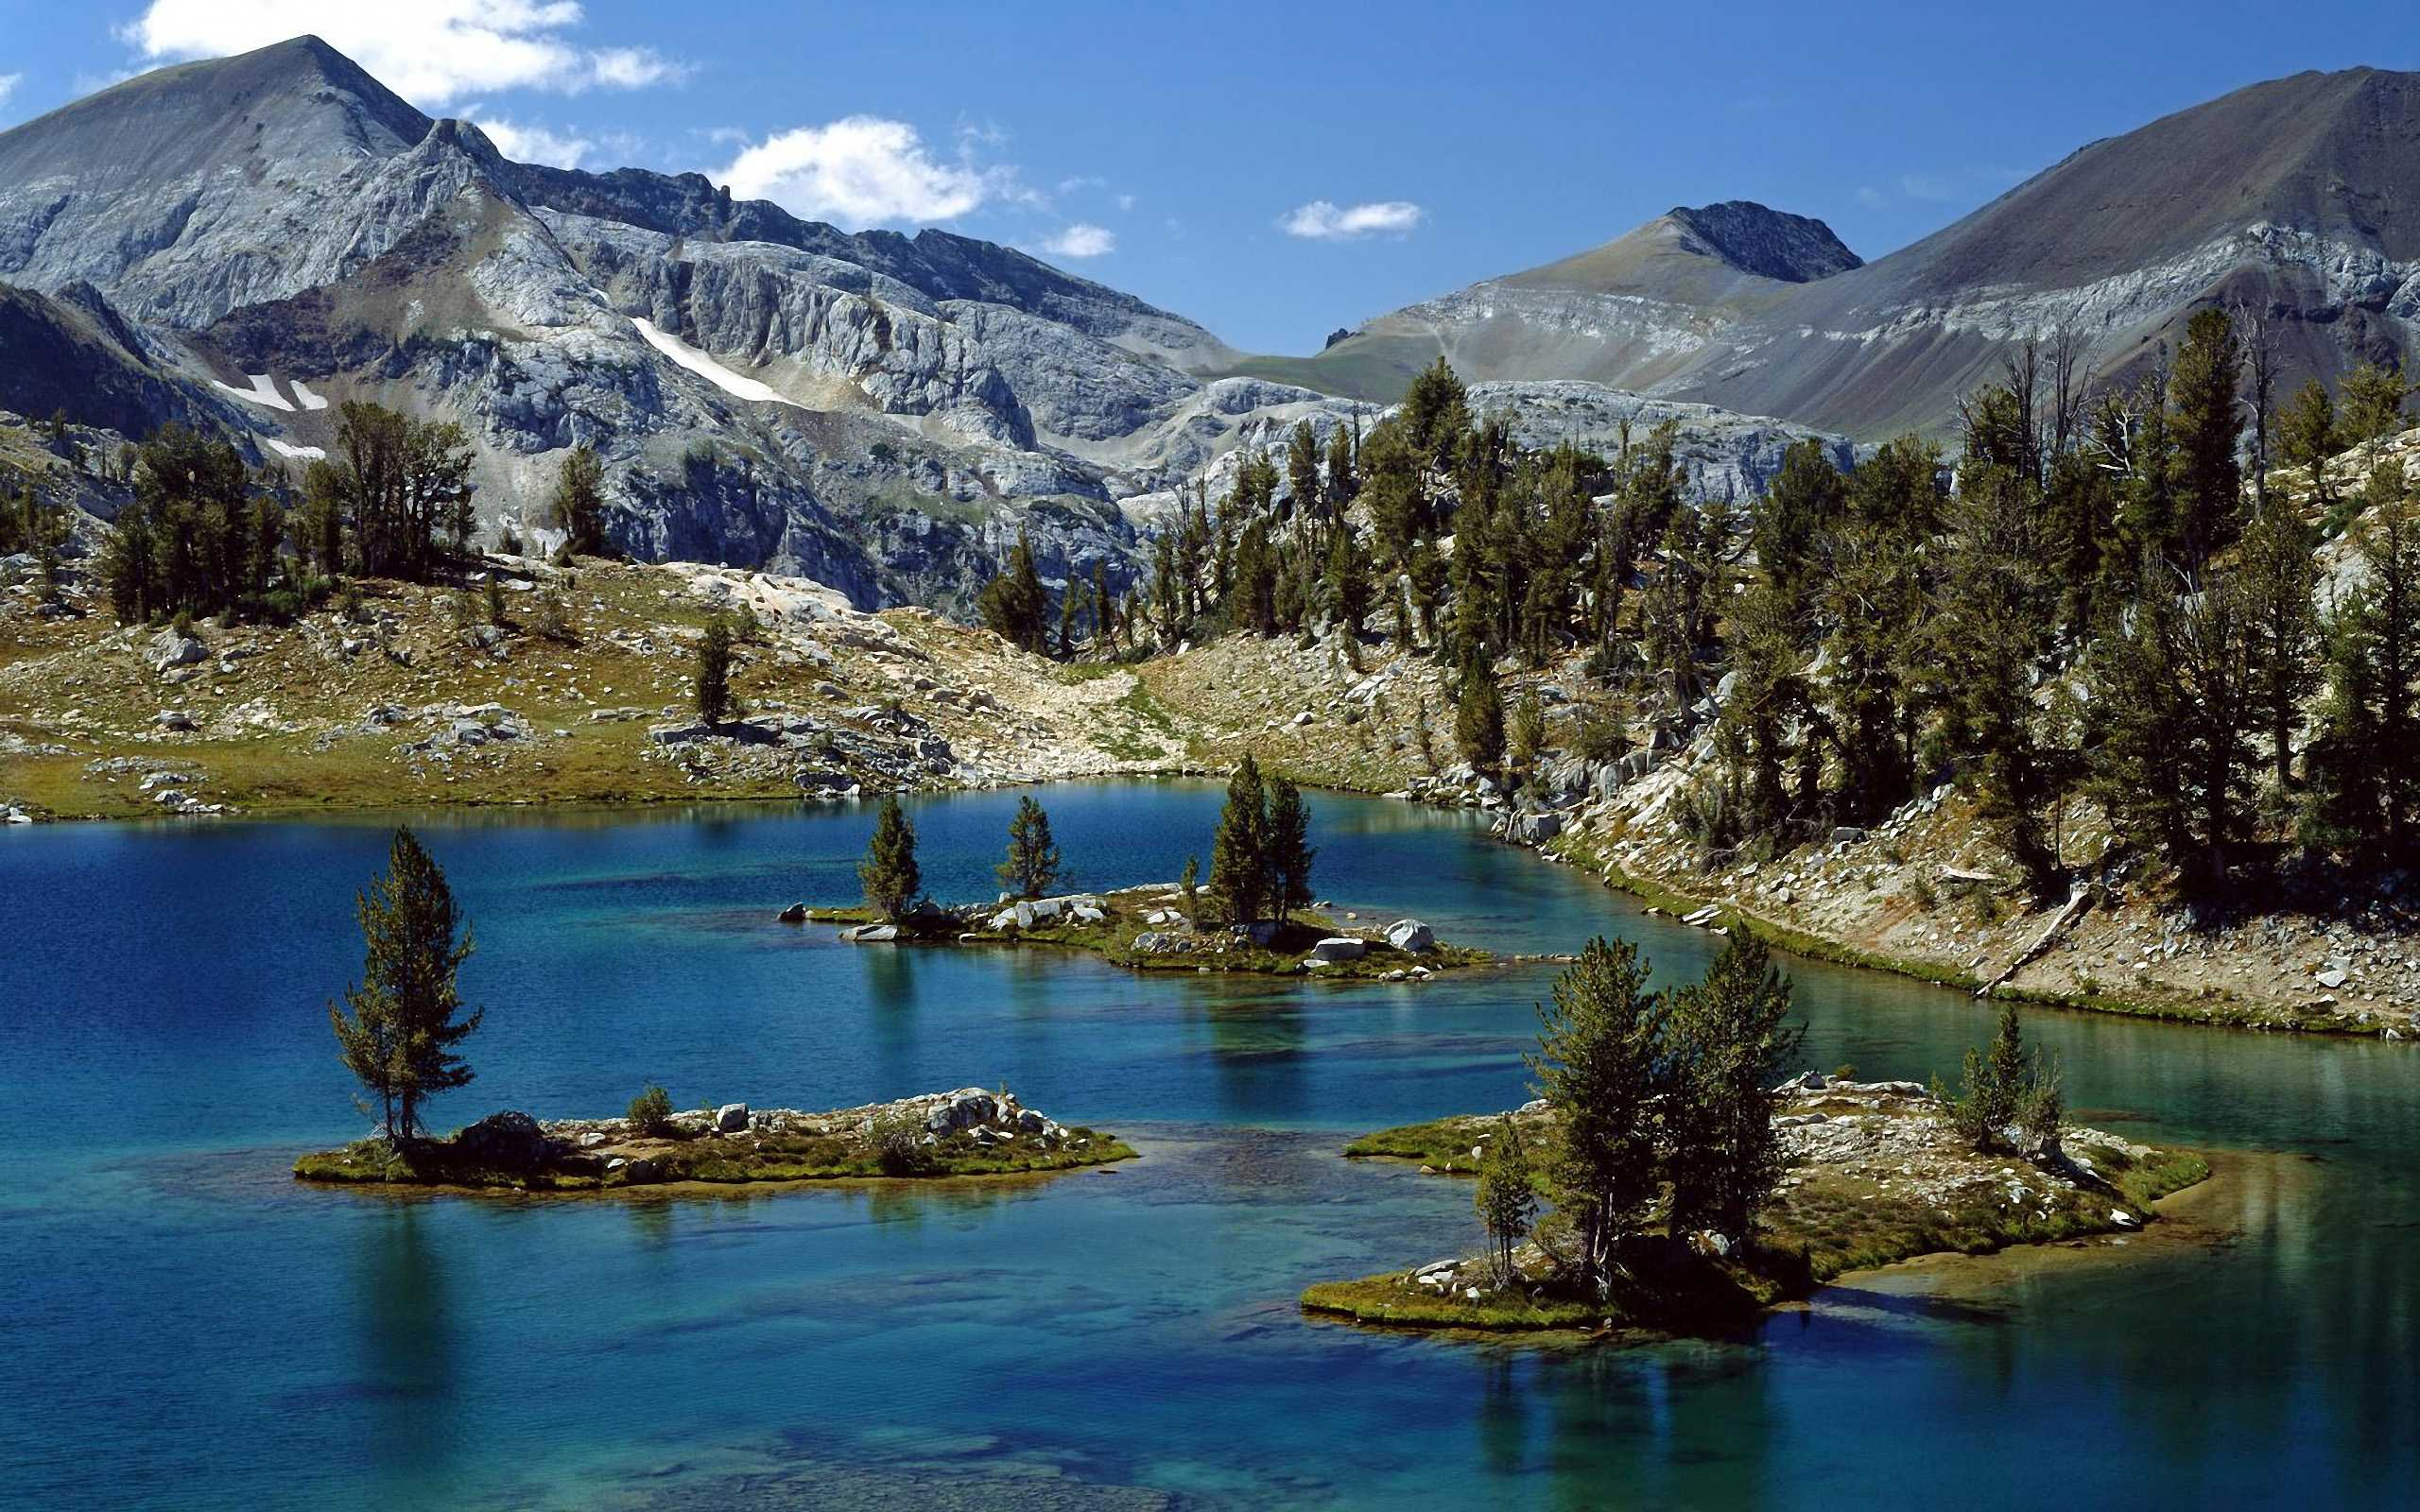 Glacier Lake, Wallowa-Whitman National Forest, Eagle Cap Wilderness Area, Oregon